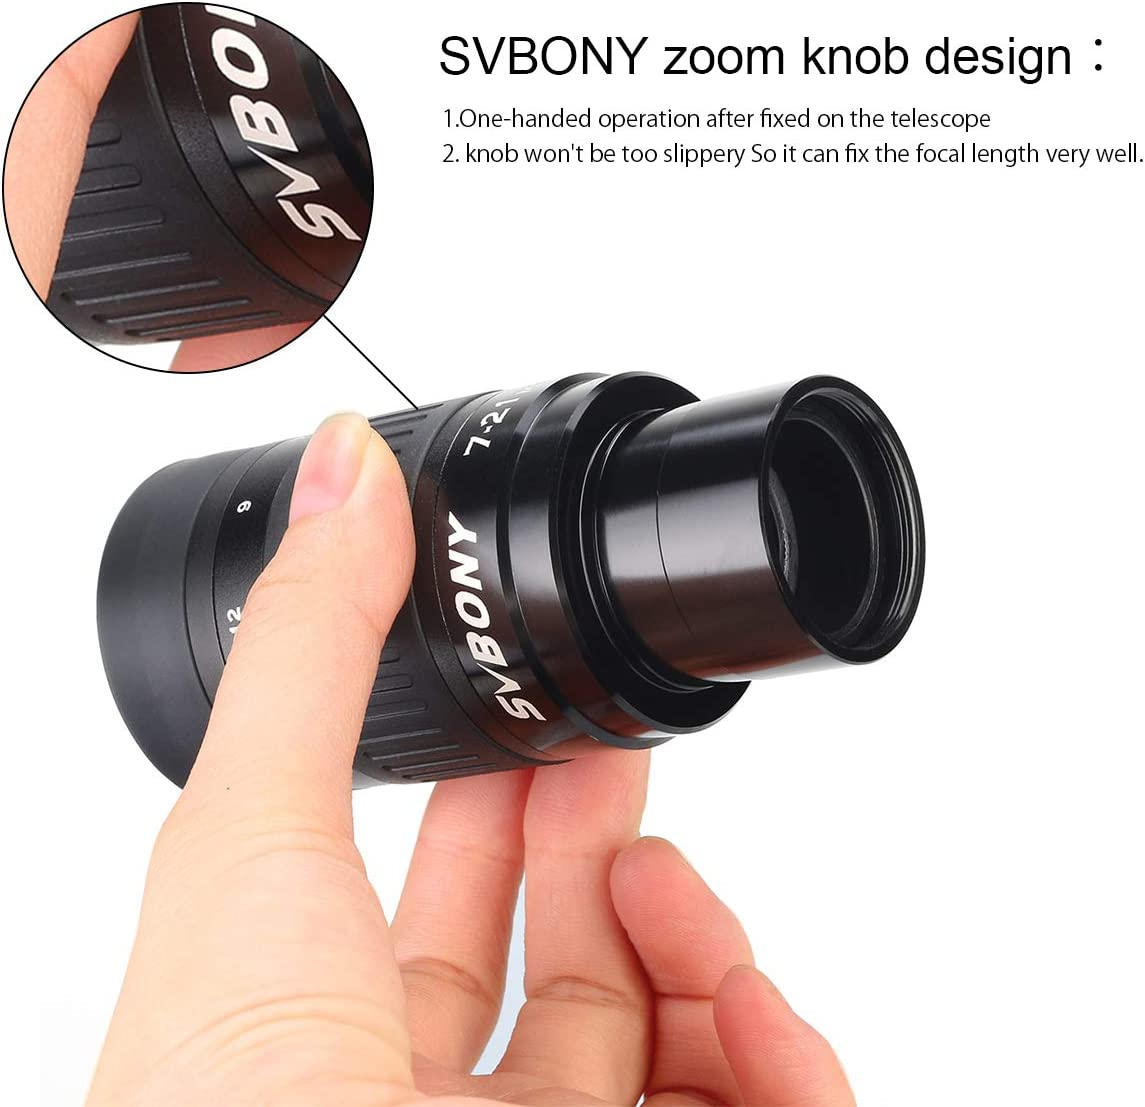 SVBONY SV135 Telescope Eyepiece Zoom 7 to 21mm 1.25 Inch Fully multi Coated 6 Element 4 Group for Astronomic Telescopes